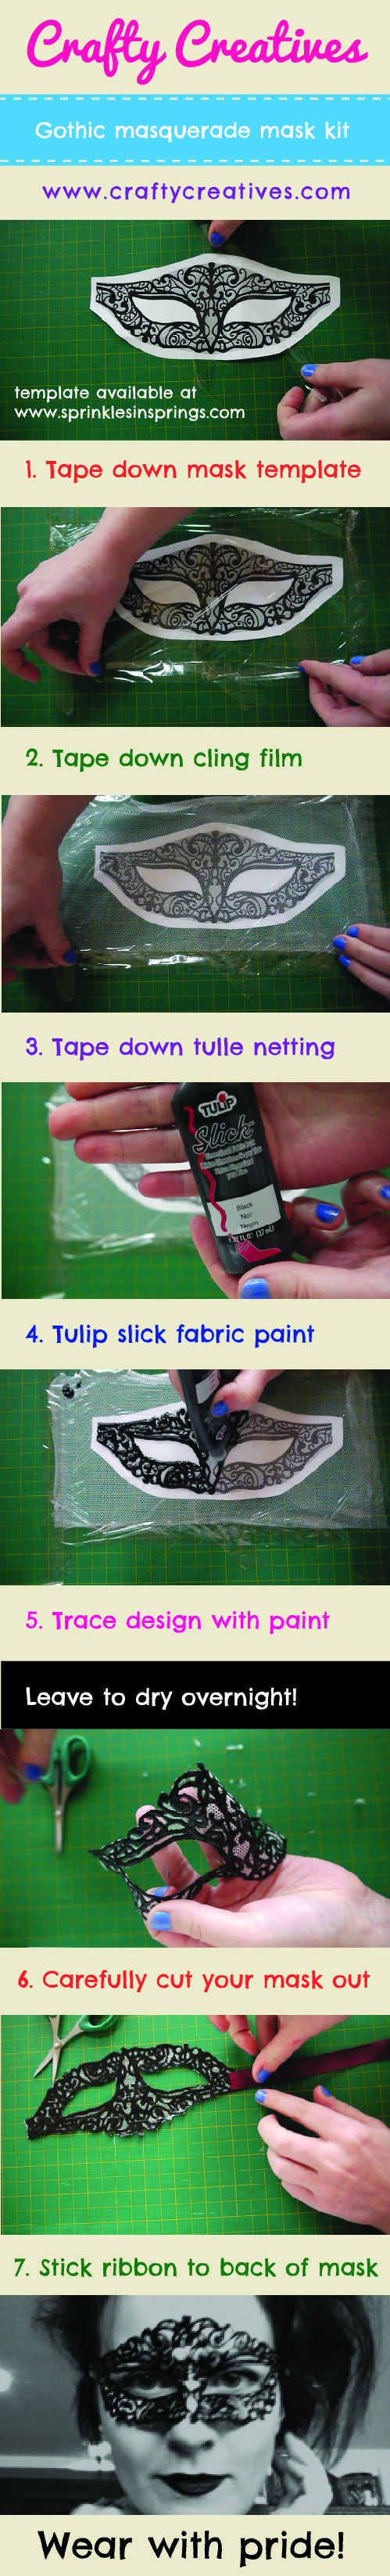 Make your own masquerade mask!    www.craftycreatives.com  Simple idea, template from www.sprinklesinsprings.com   Best used with Tulip fabric paint!